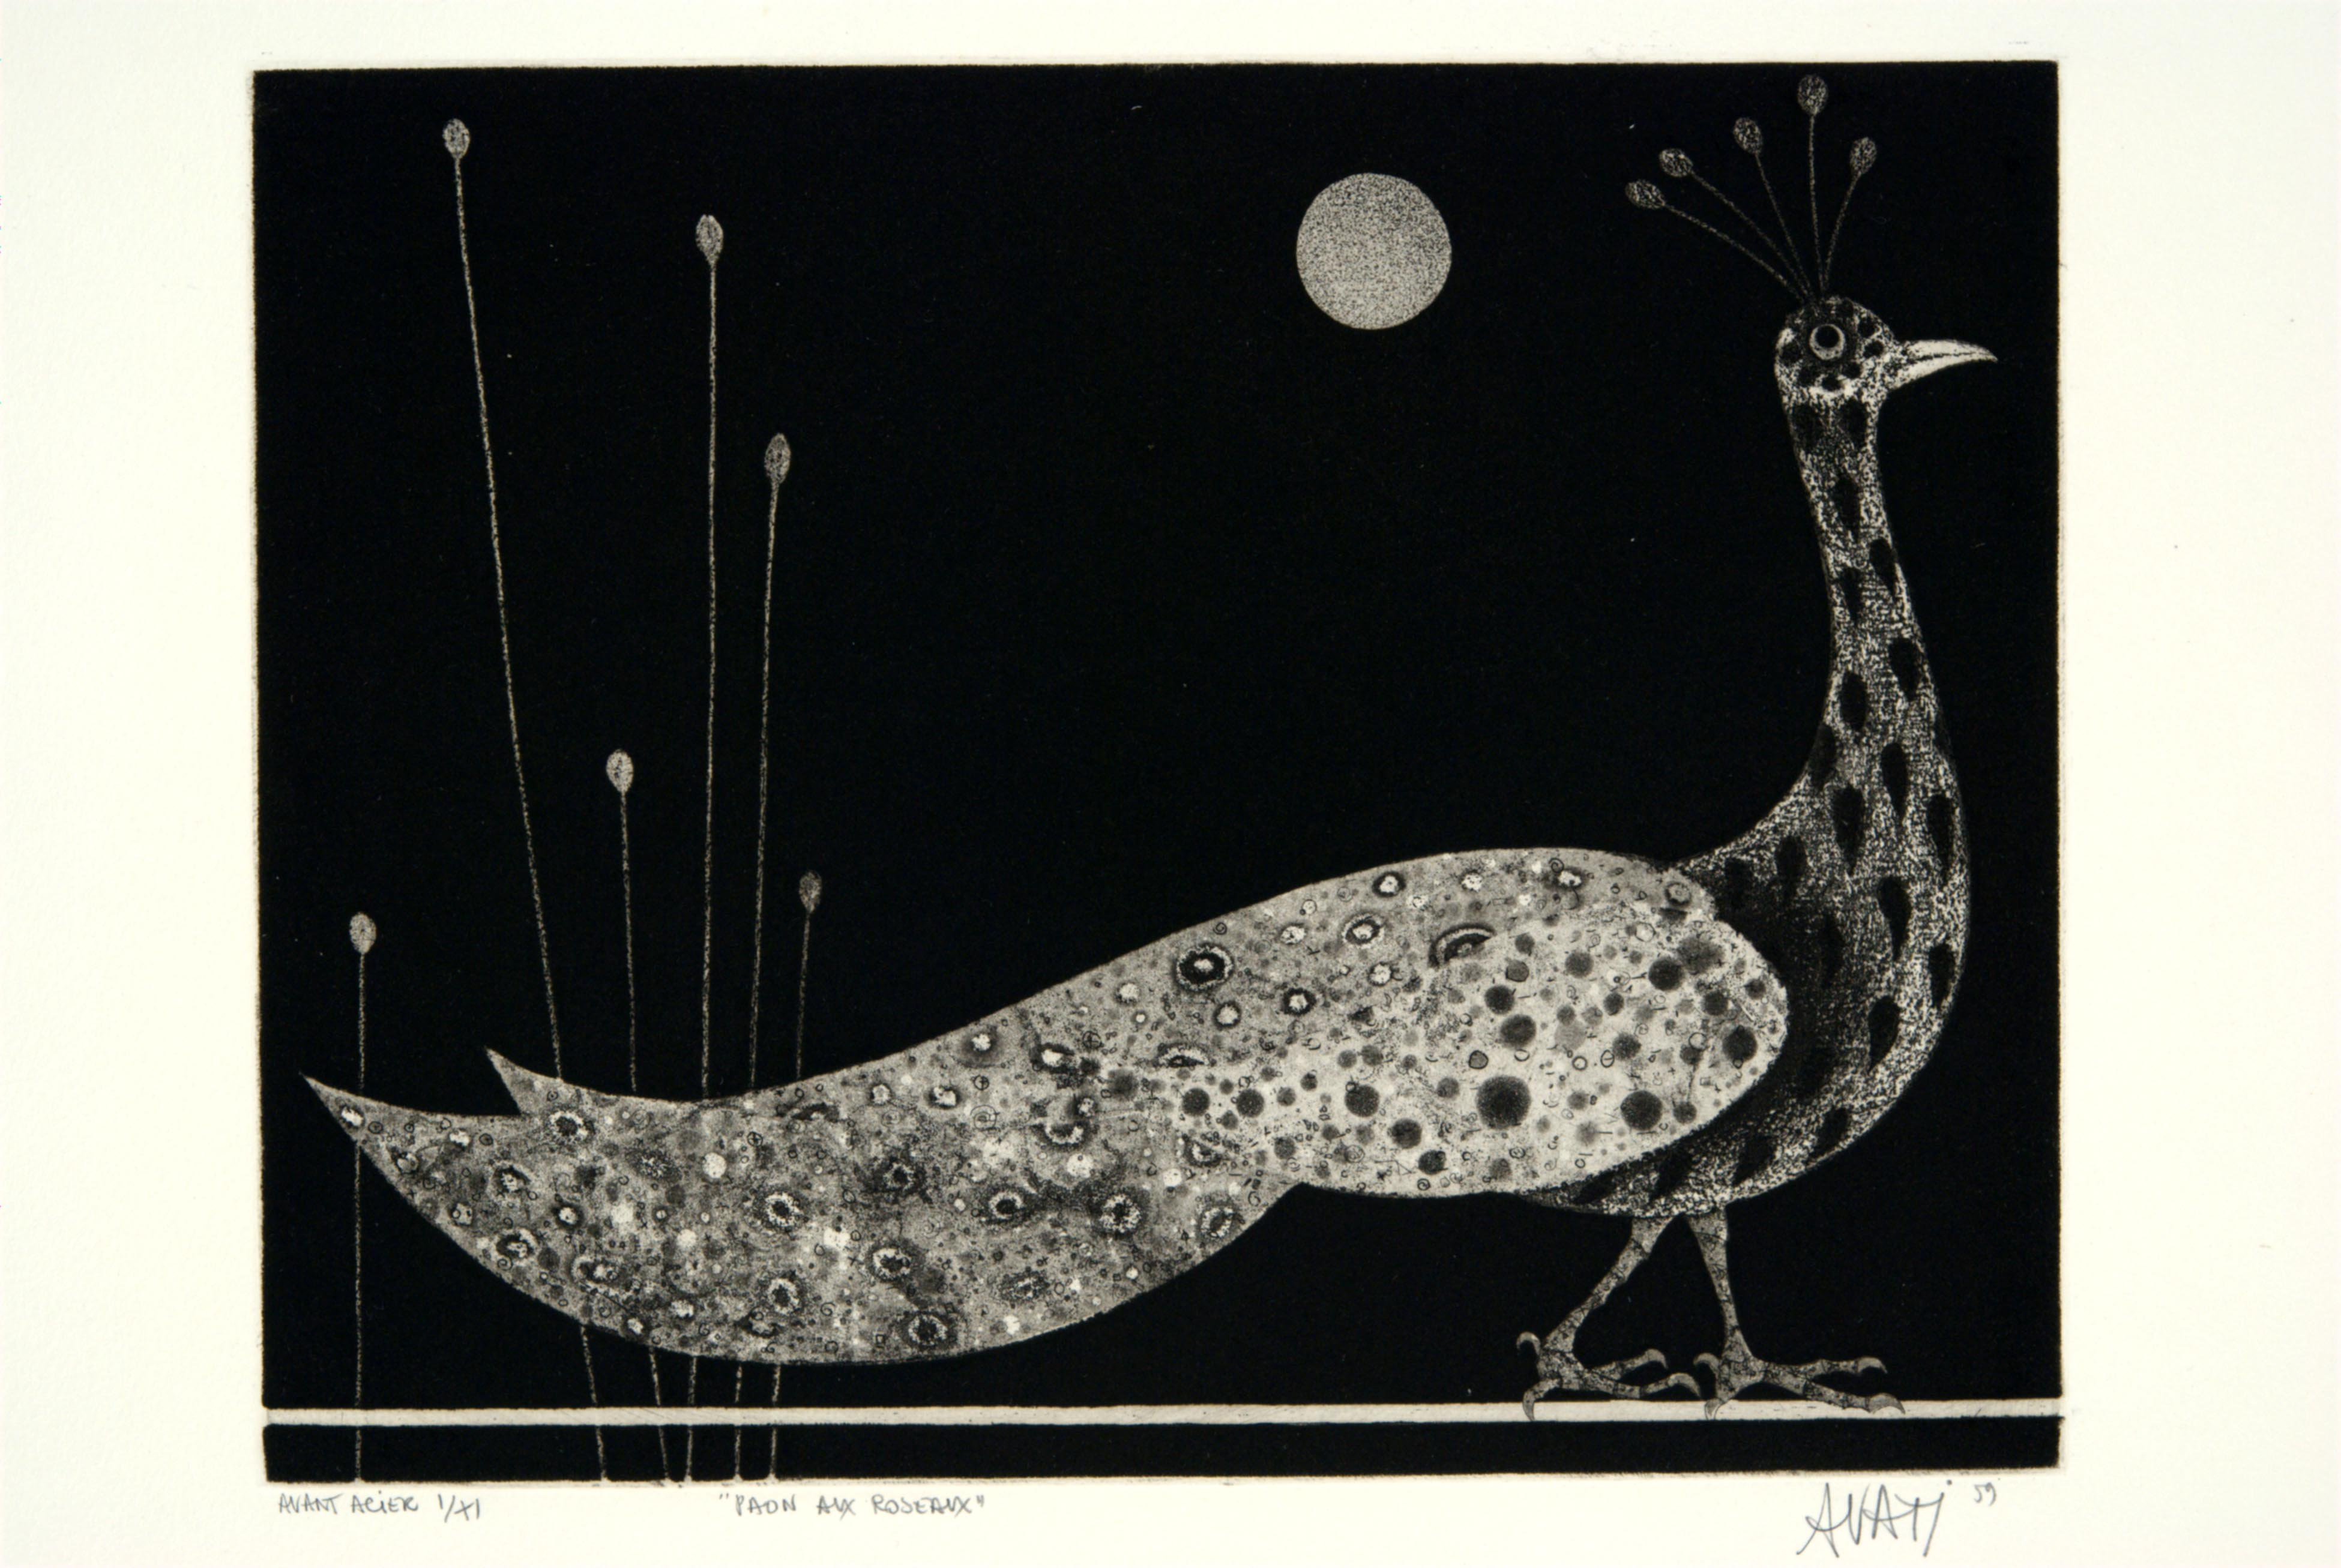 Mario Avati, Peacock with Reeds, June 1959